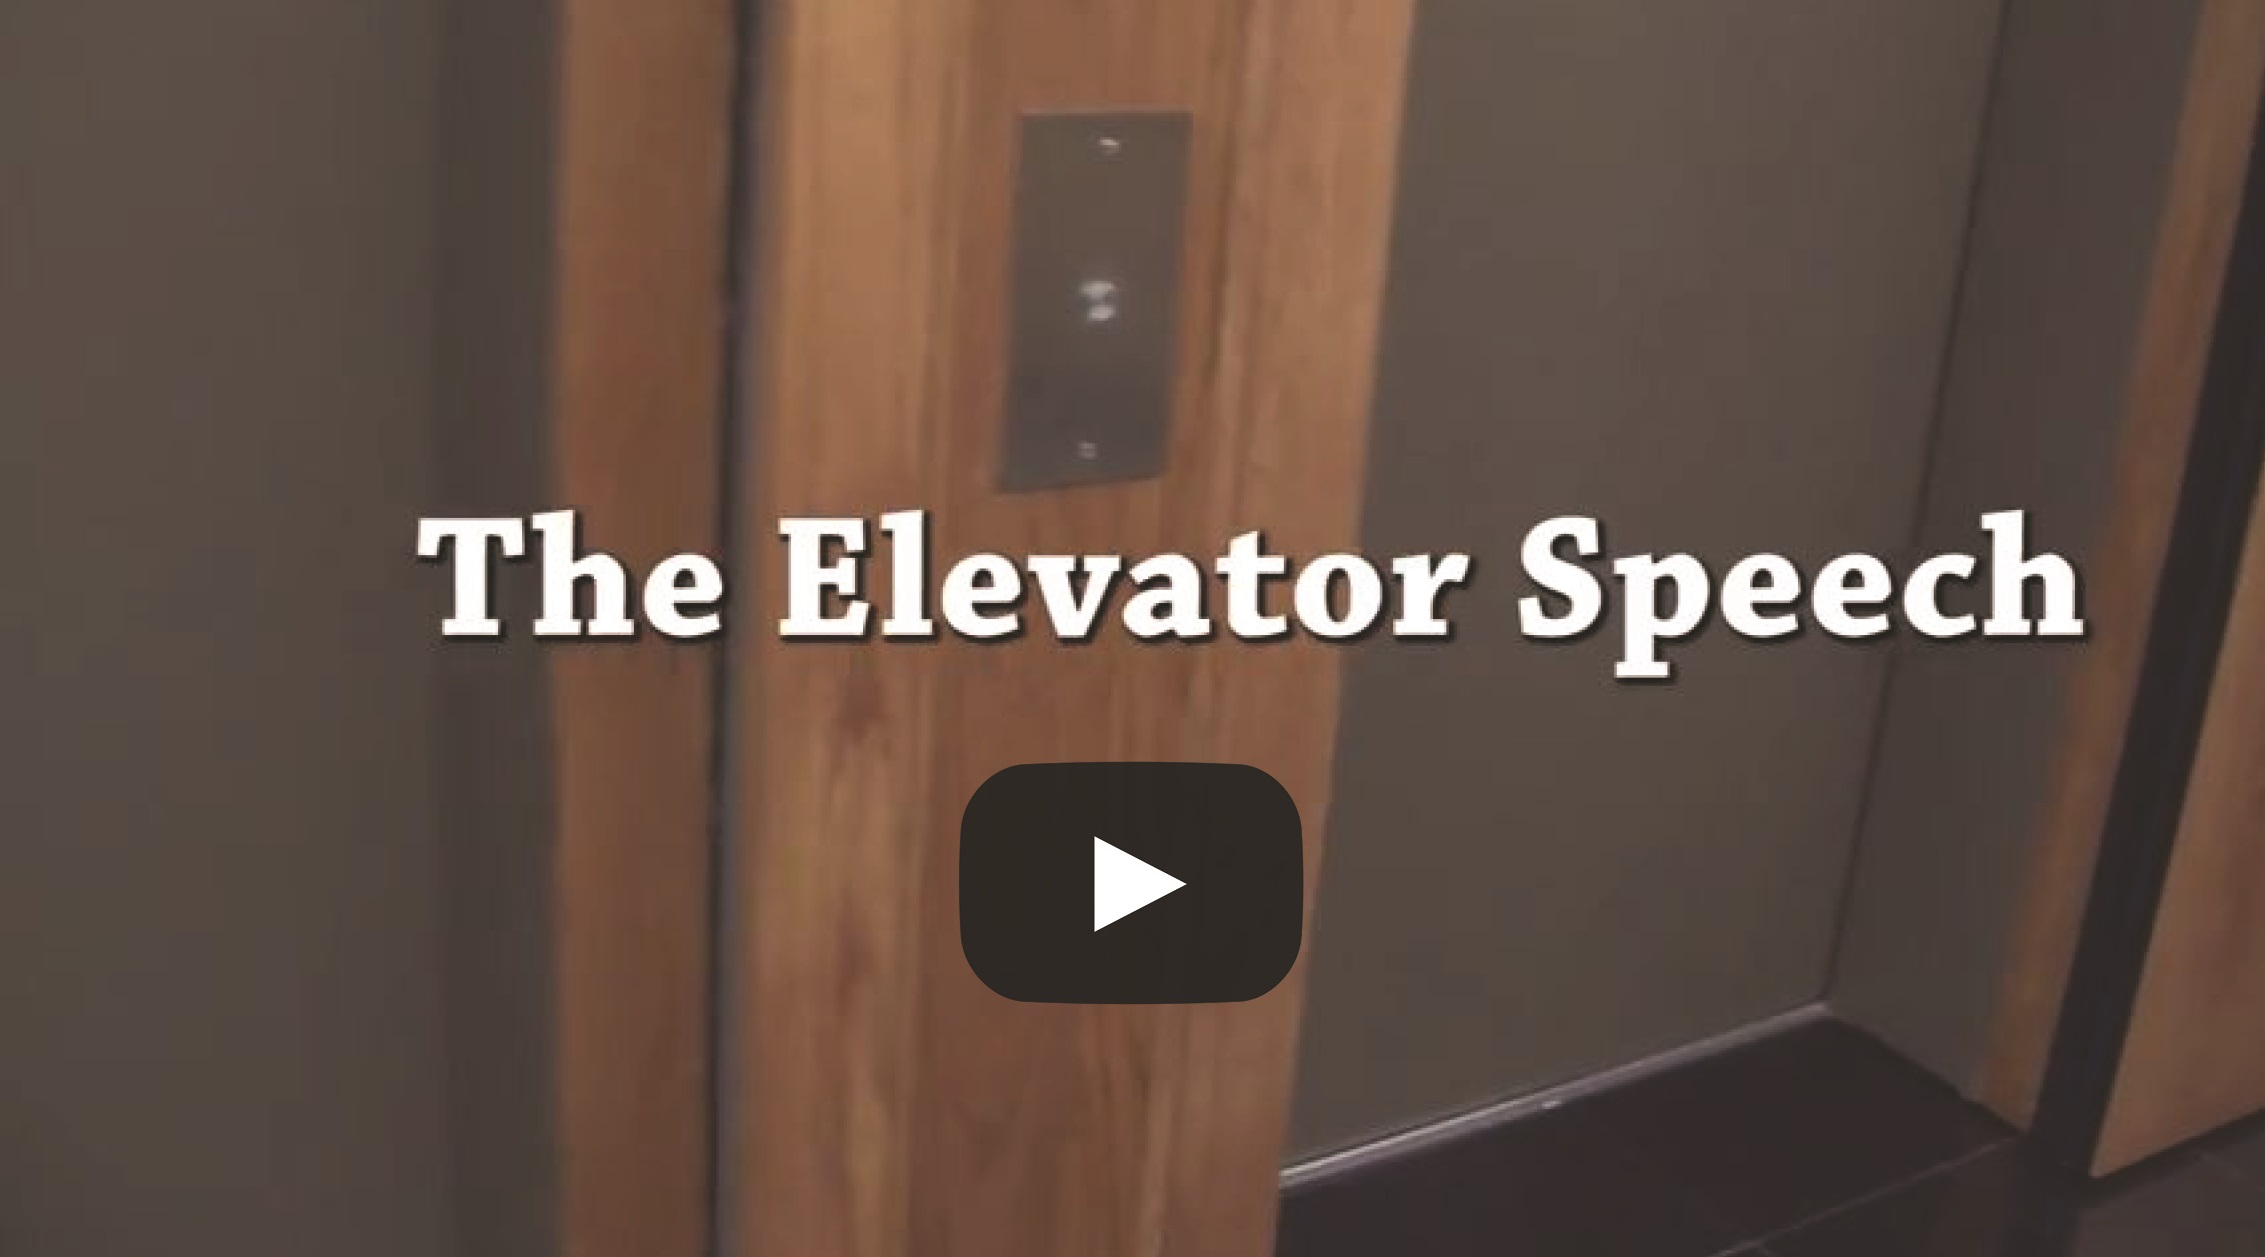 The Elevator Speech